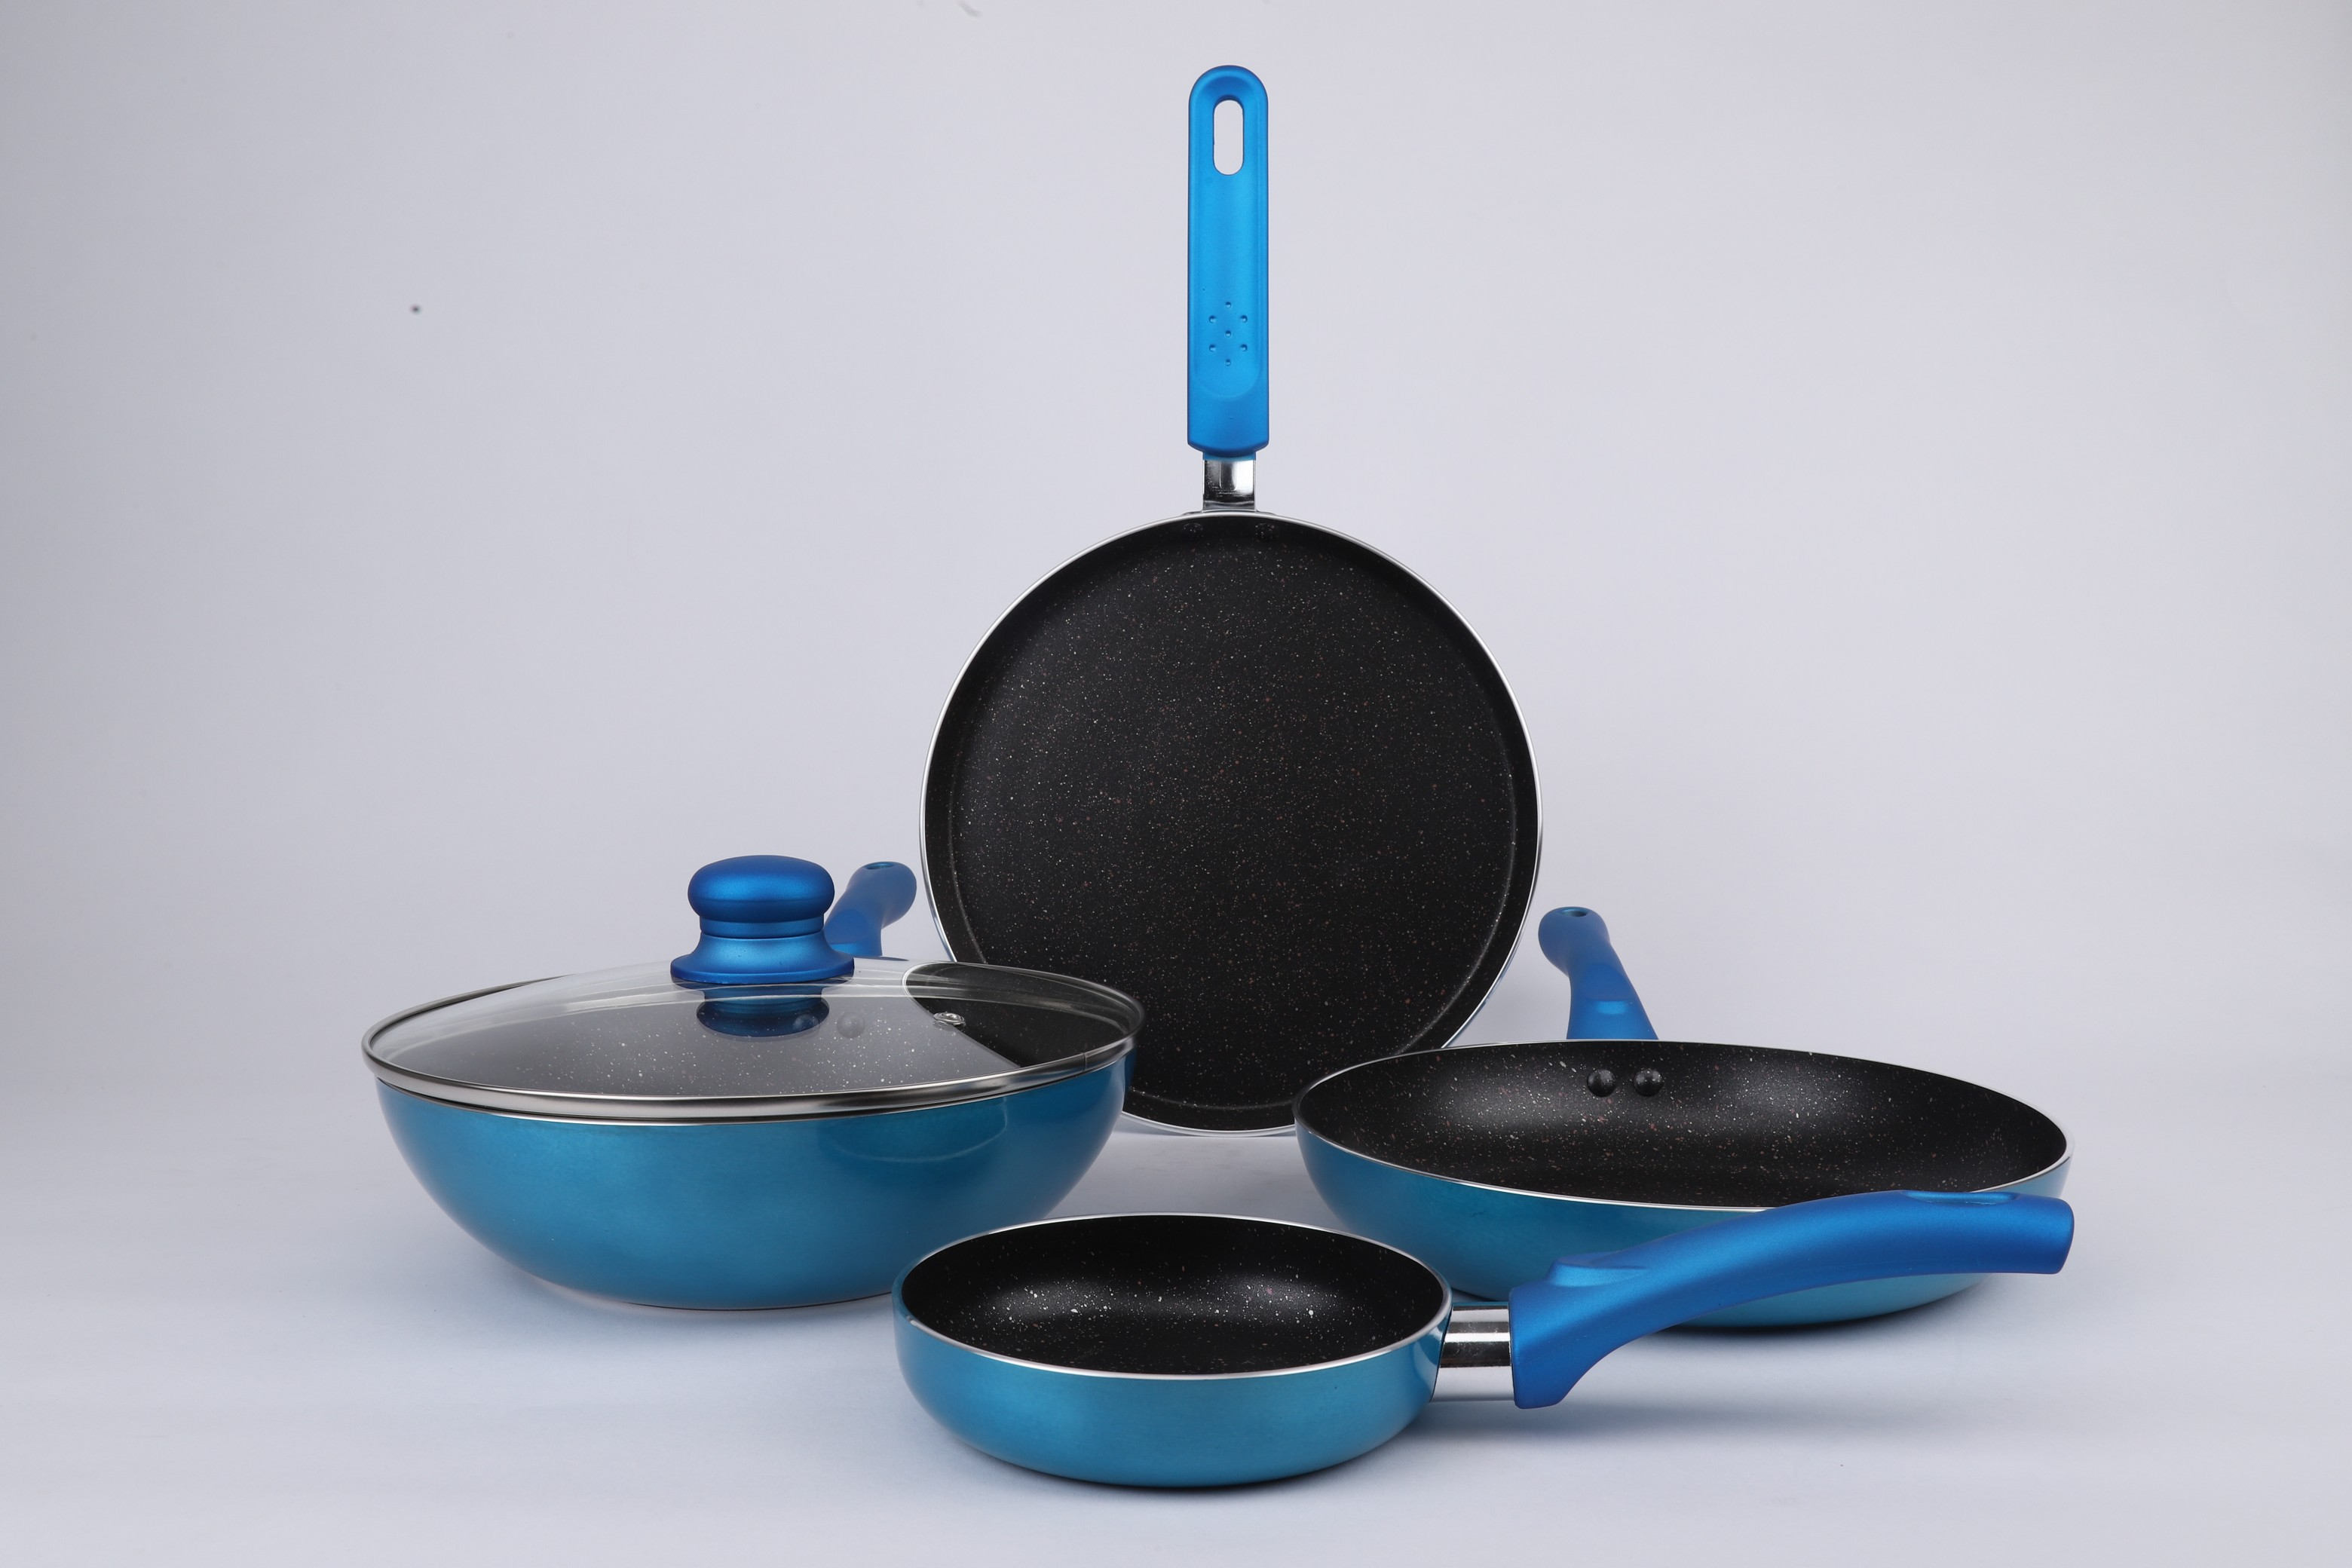 Vikas Khanna 5 pc Esprit cookware set Blue Stainless steel cookware sets in Blue Colour by Bergner